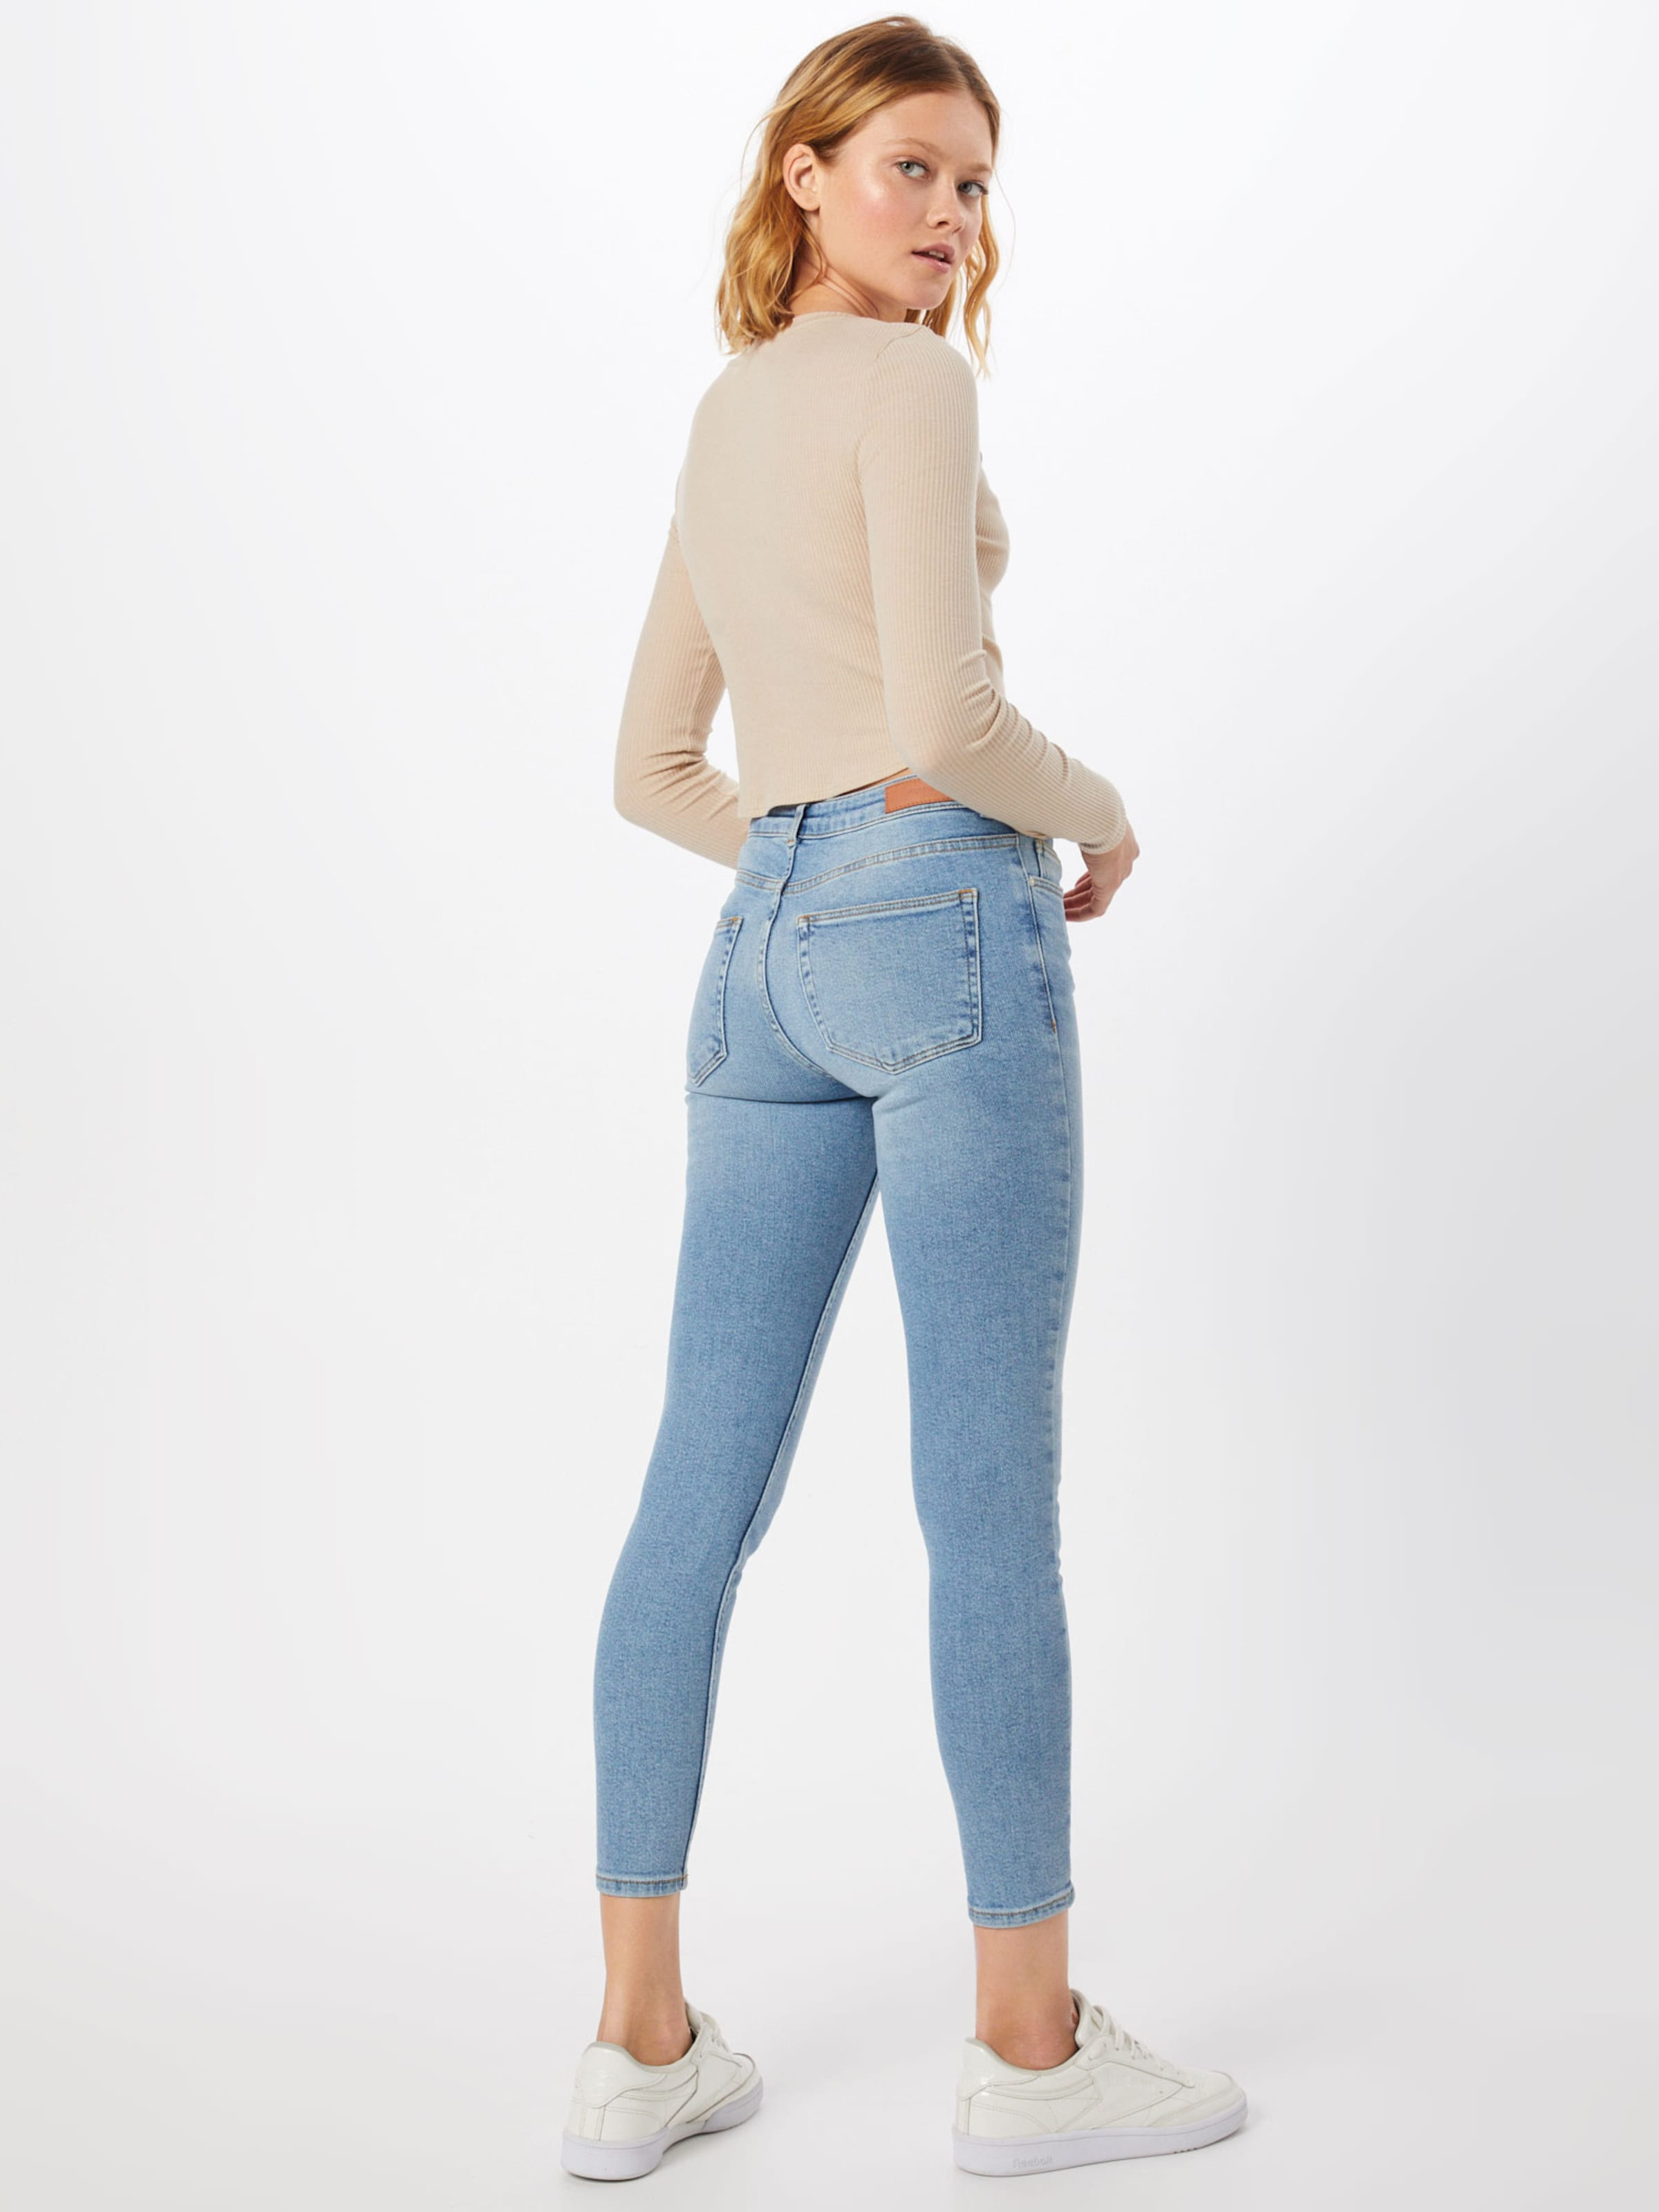 Jeans In D Review Mid Blauw Denim jeans' 'skinny Blue zpGVqUMS